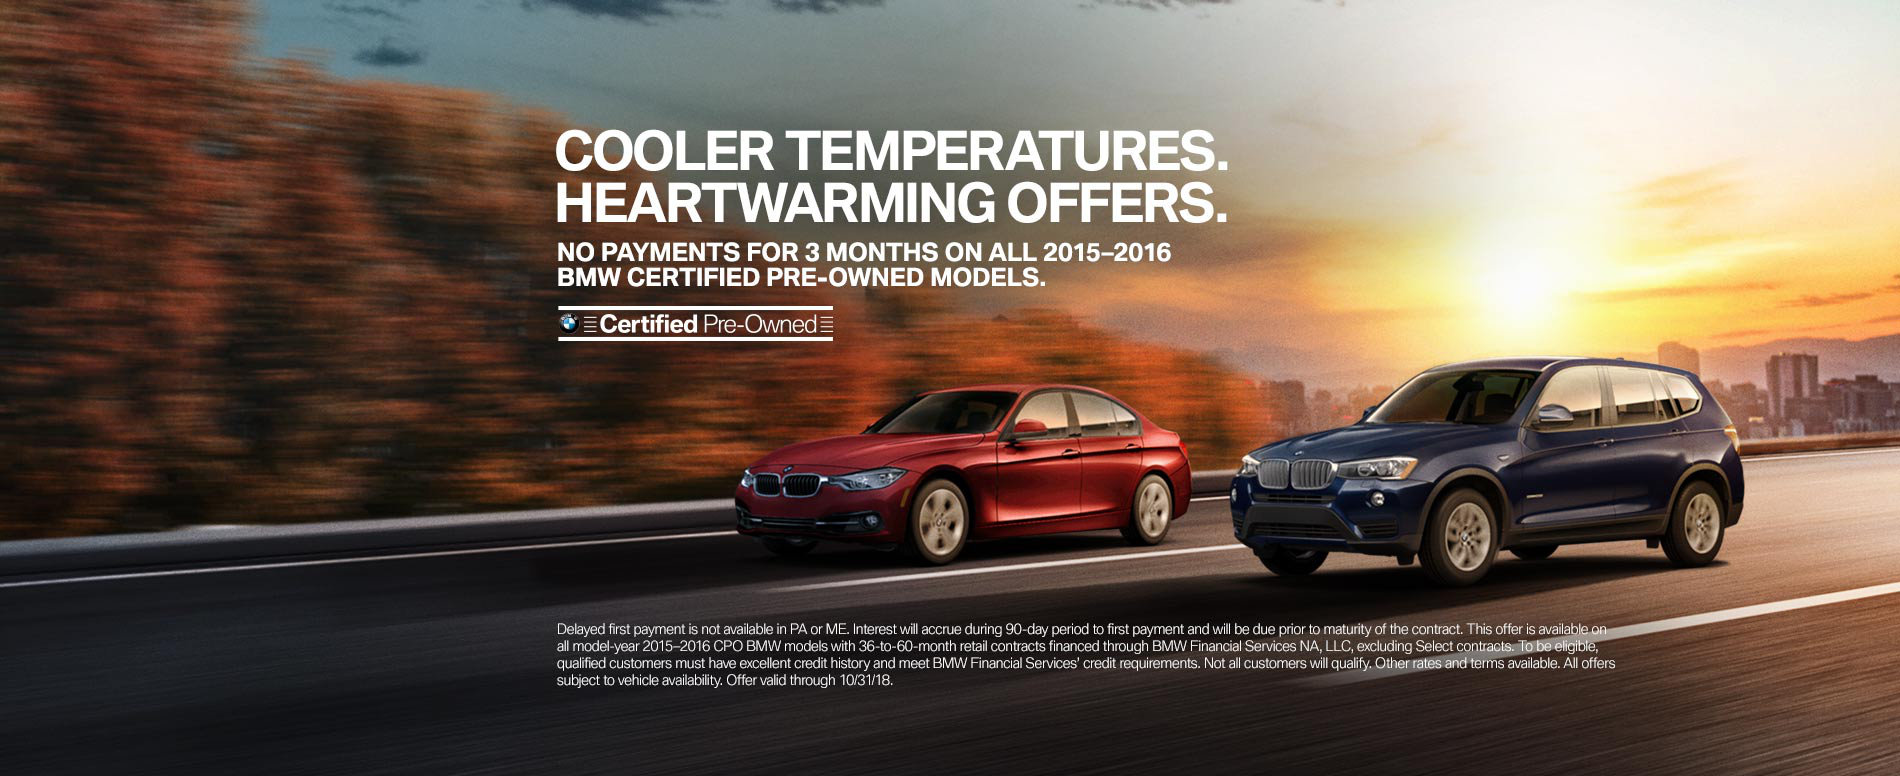 No Payments for 3 Months on all 2015-2016 BMW Certified Pre-Owne